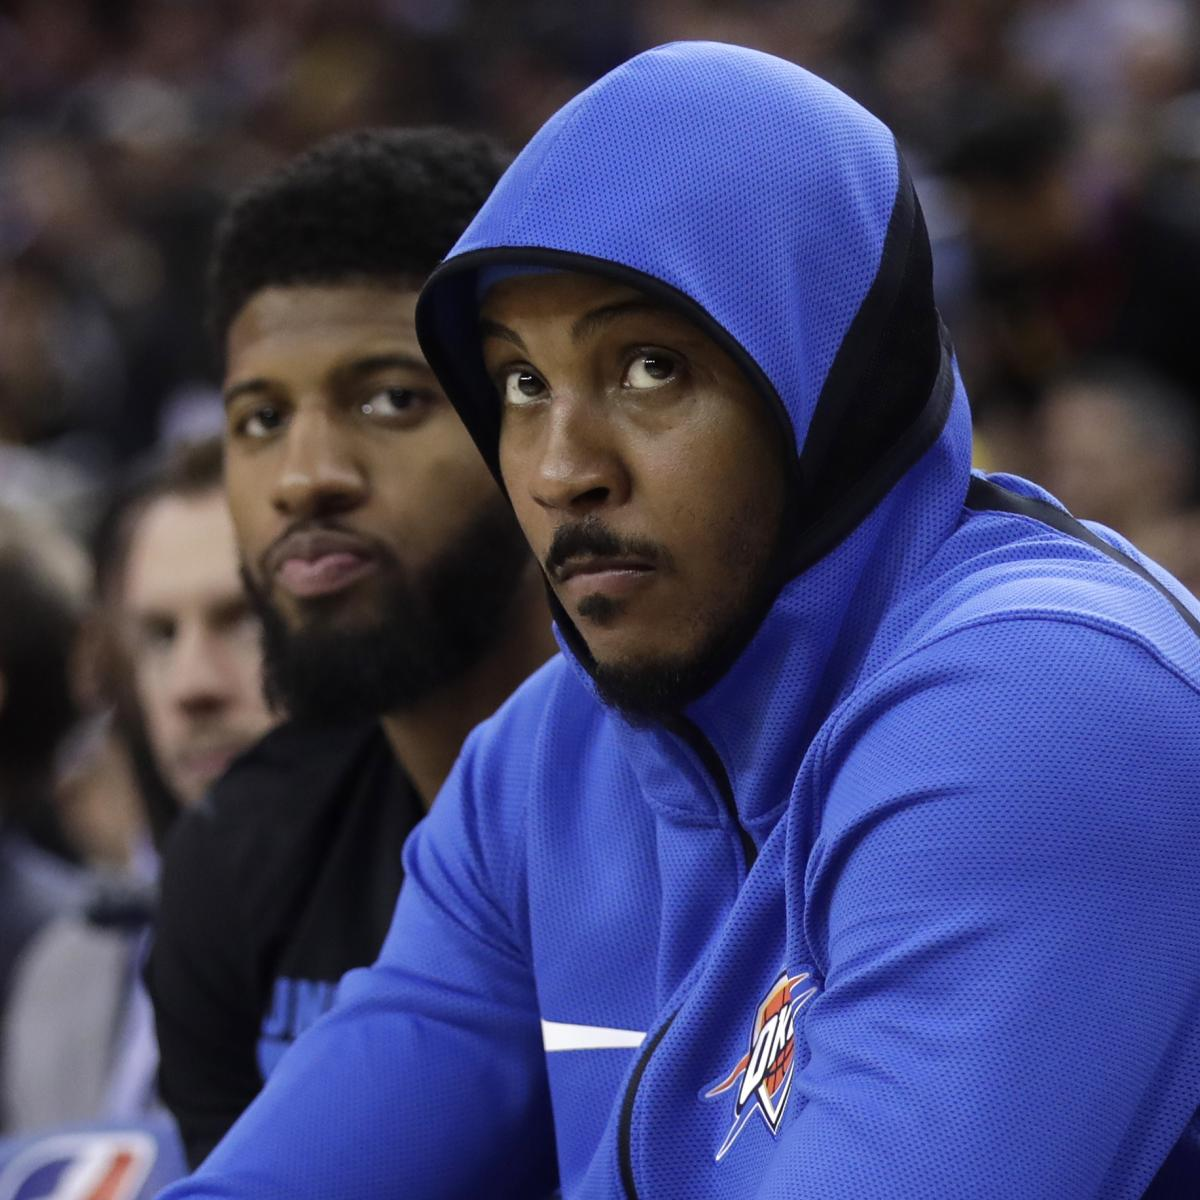 Nuggets Quarter Season Tickets: Carmelo Anthony Surprised Thunder Left Him On Bench In 4th